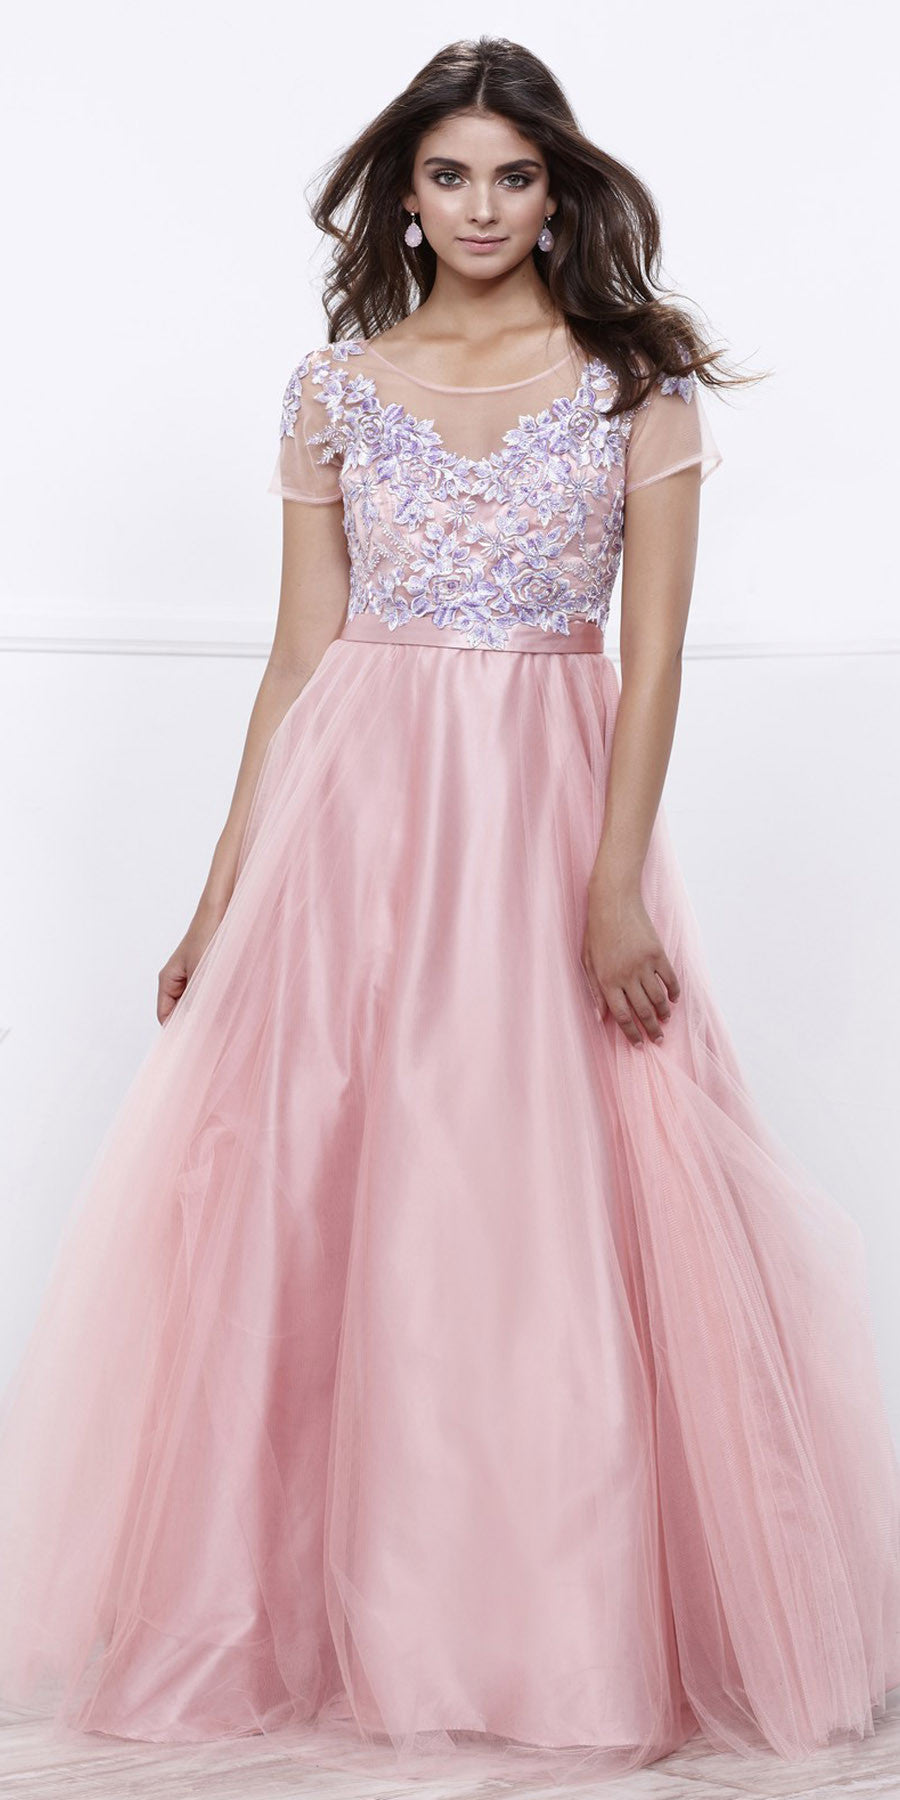 Scoop Neck Short Sleeves Embroidered Bodice Bashful Pink Ball Gown